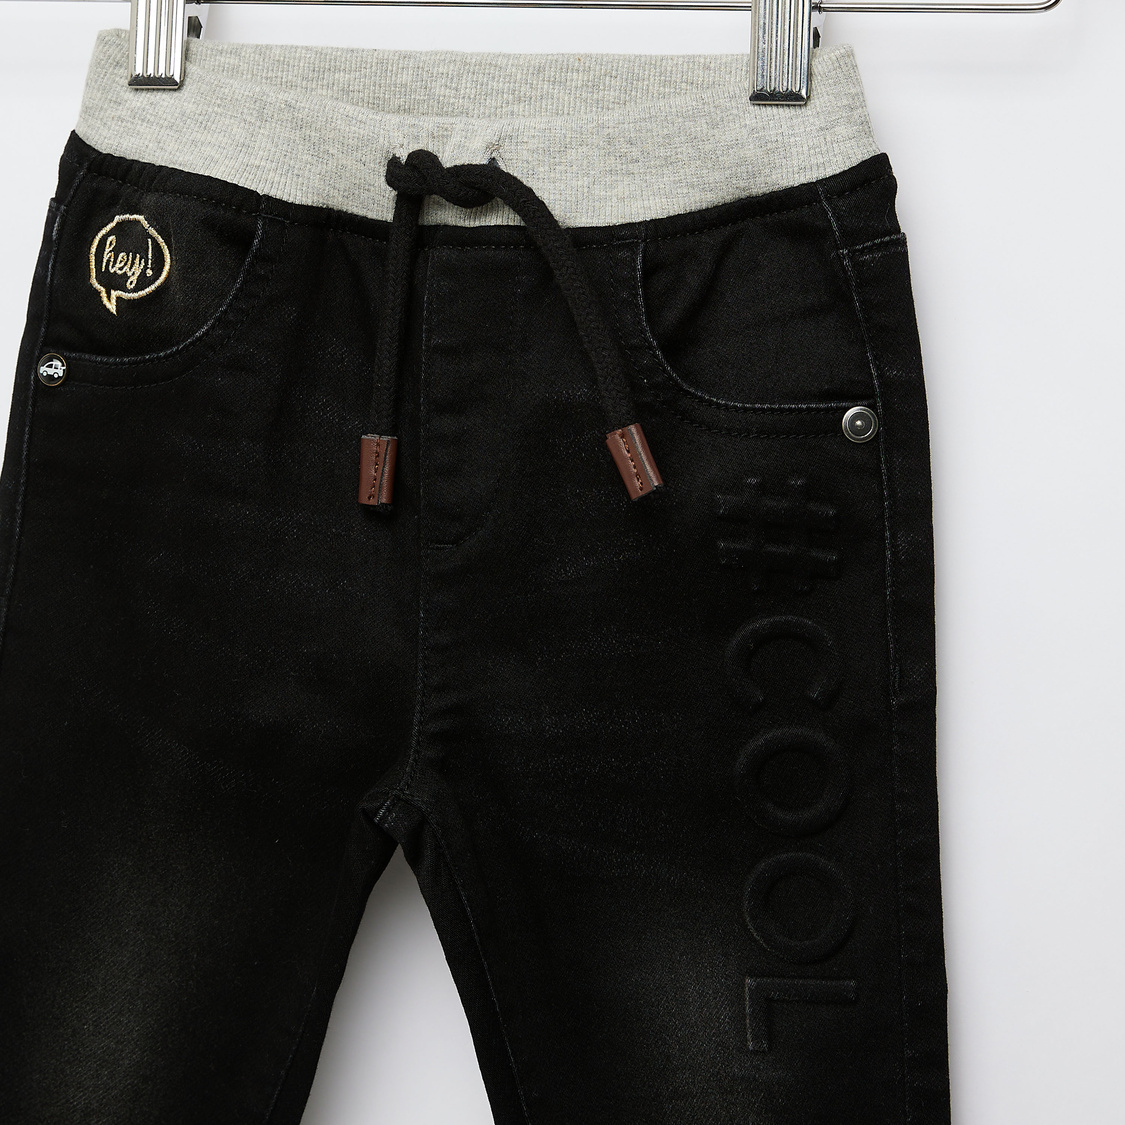 Textured Jeans with Pockets and Drawstring